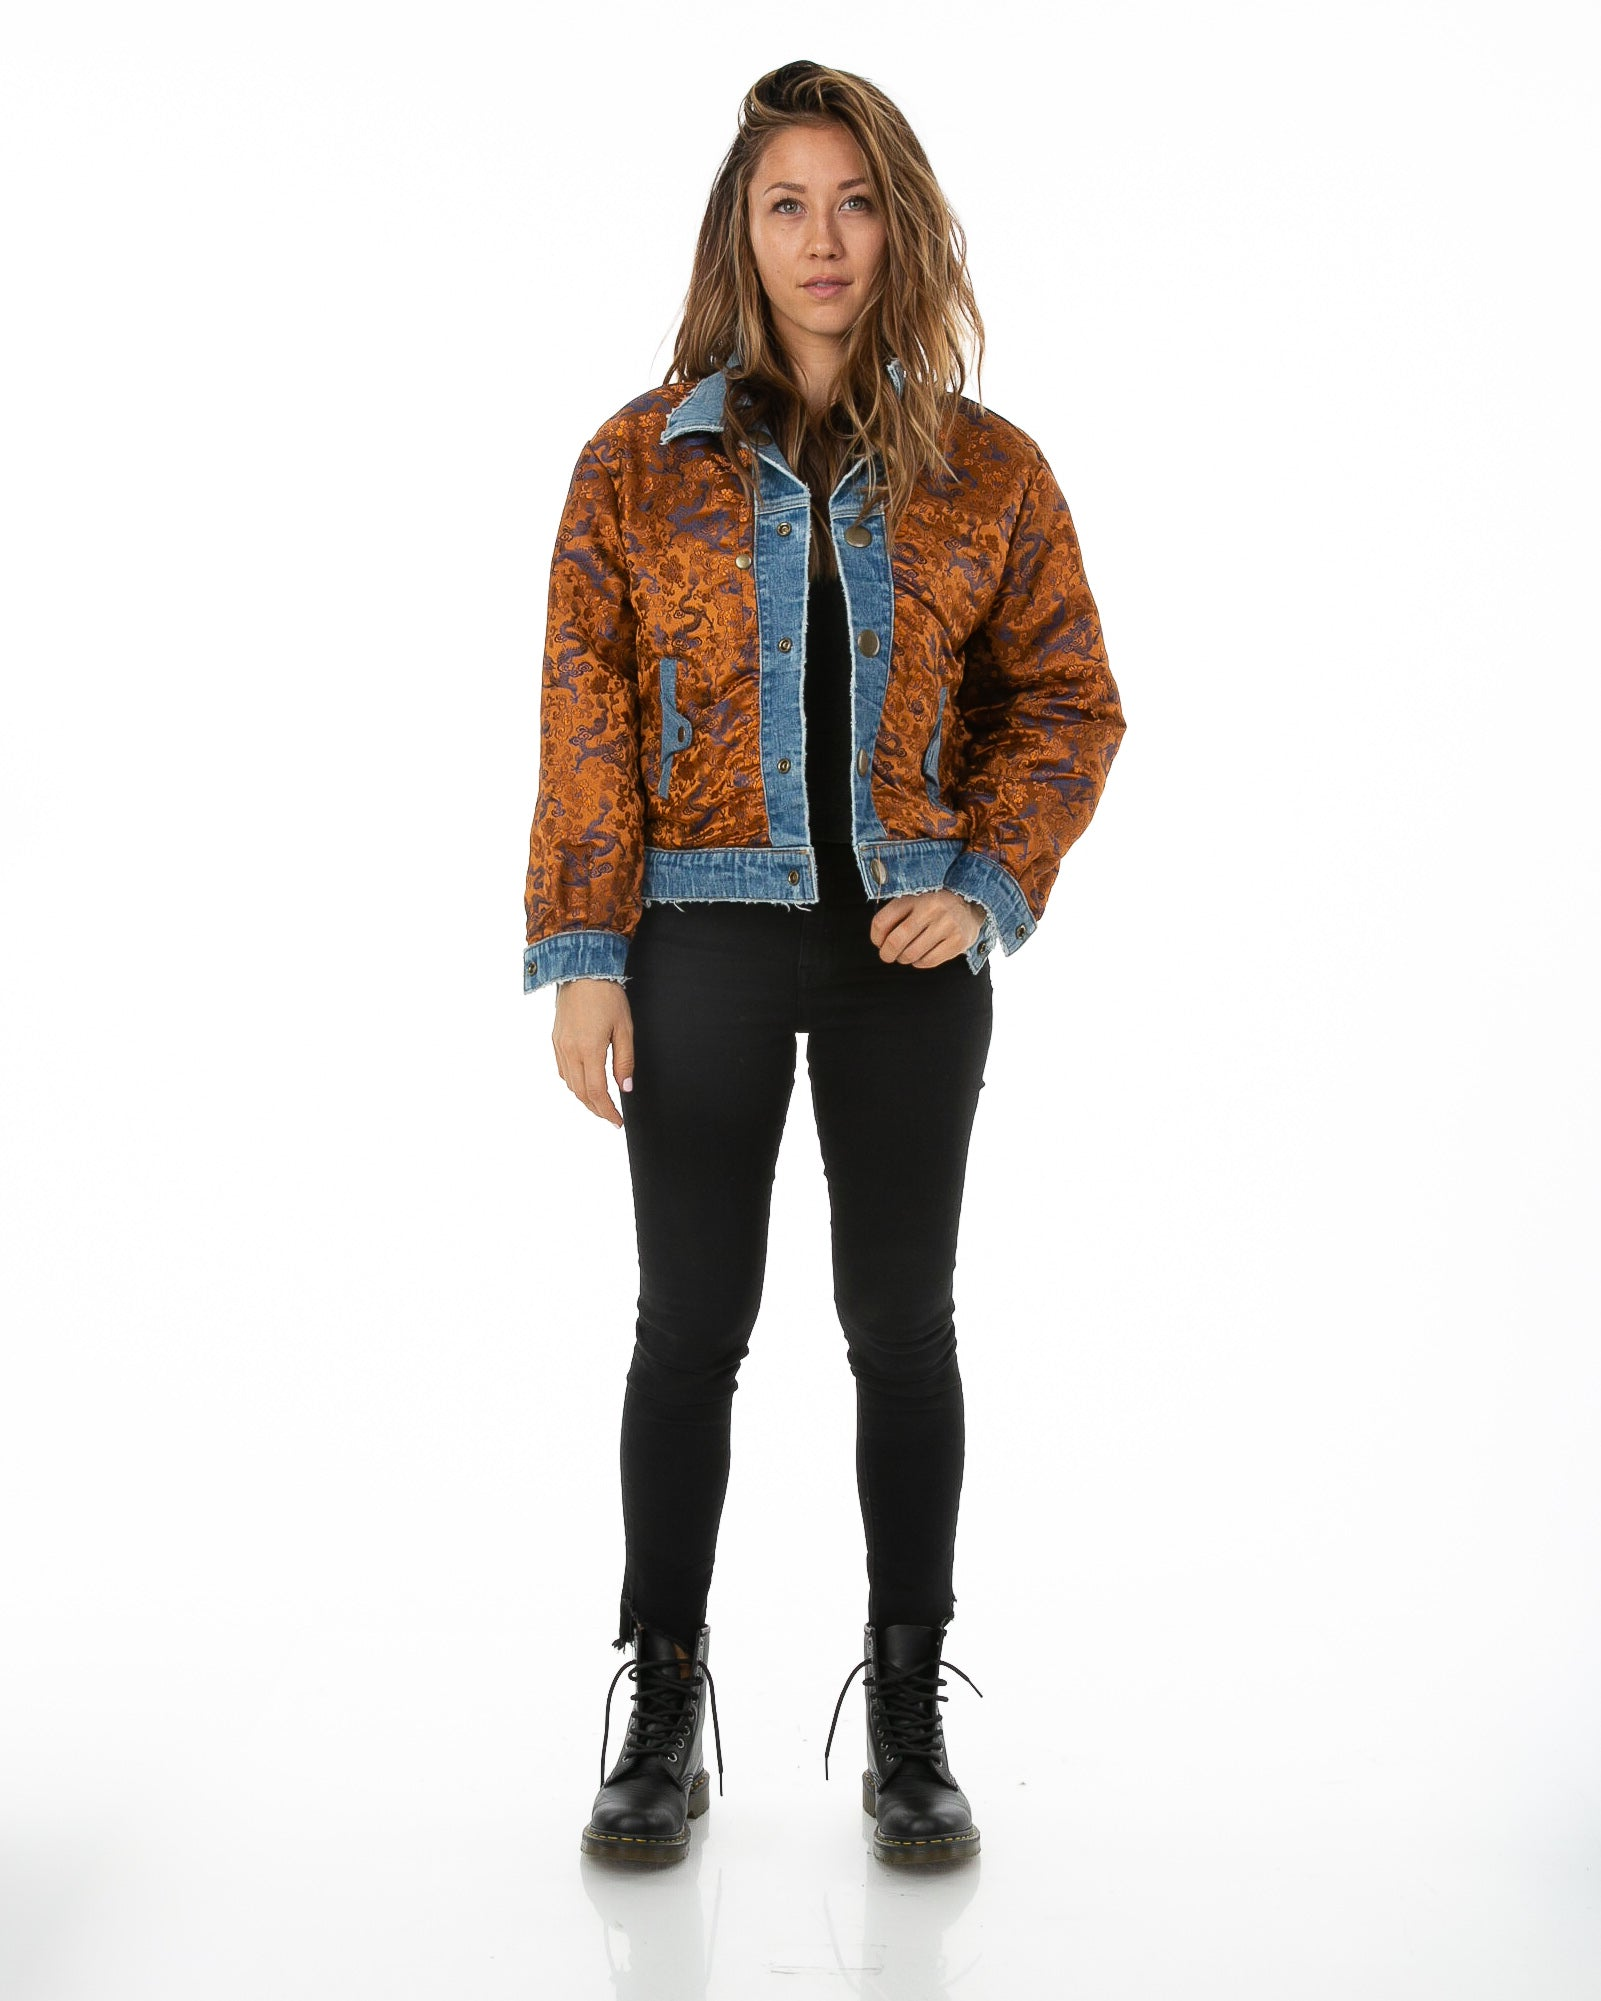 Front of female model wearing Dynasty Reversible Denim jacket